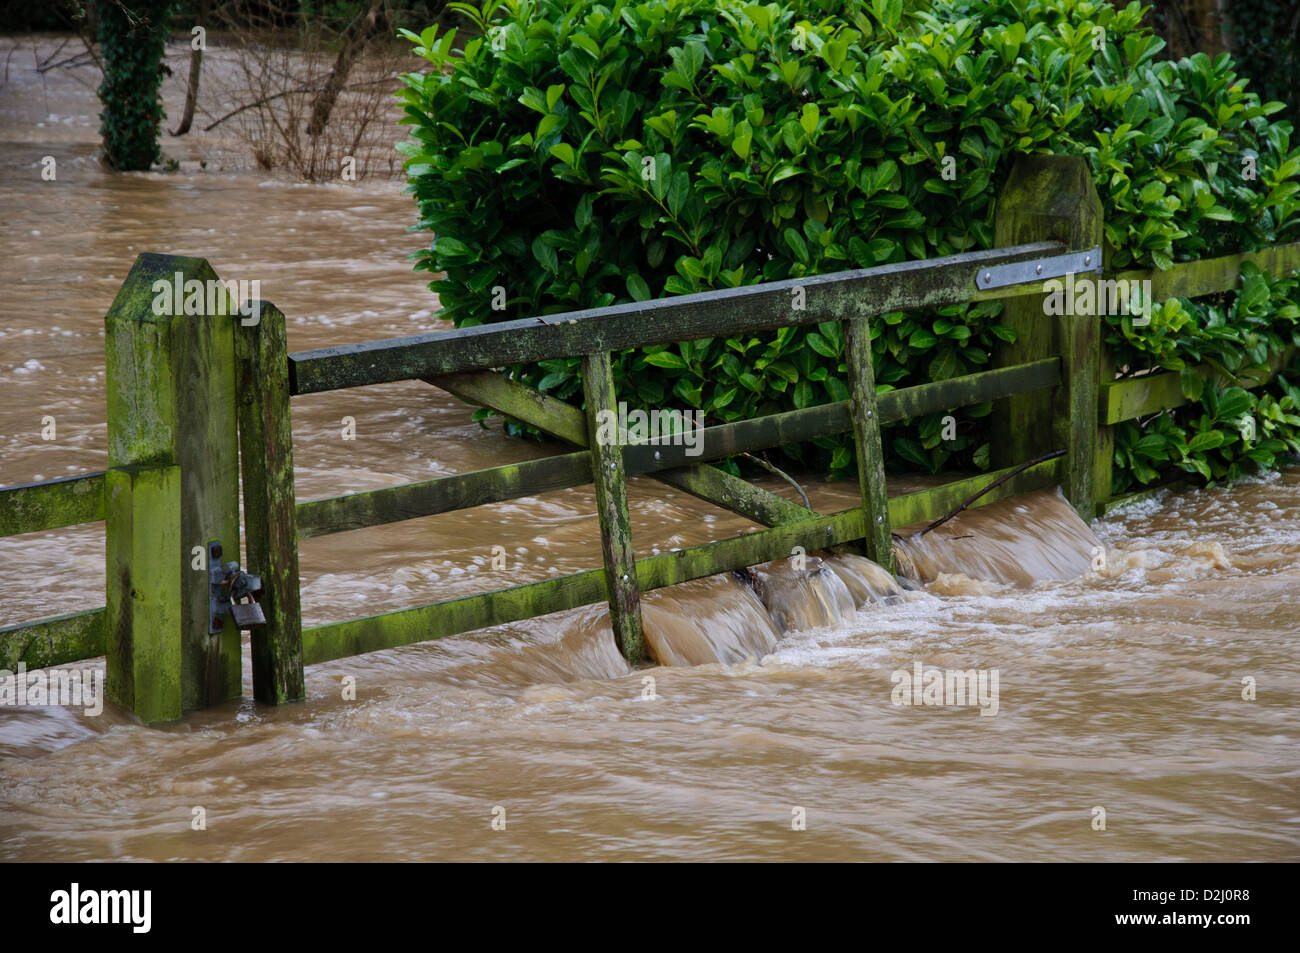 flood waters from Cod Beck, Thirsk, which has burst its